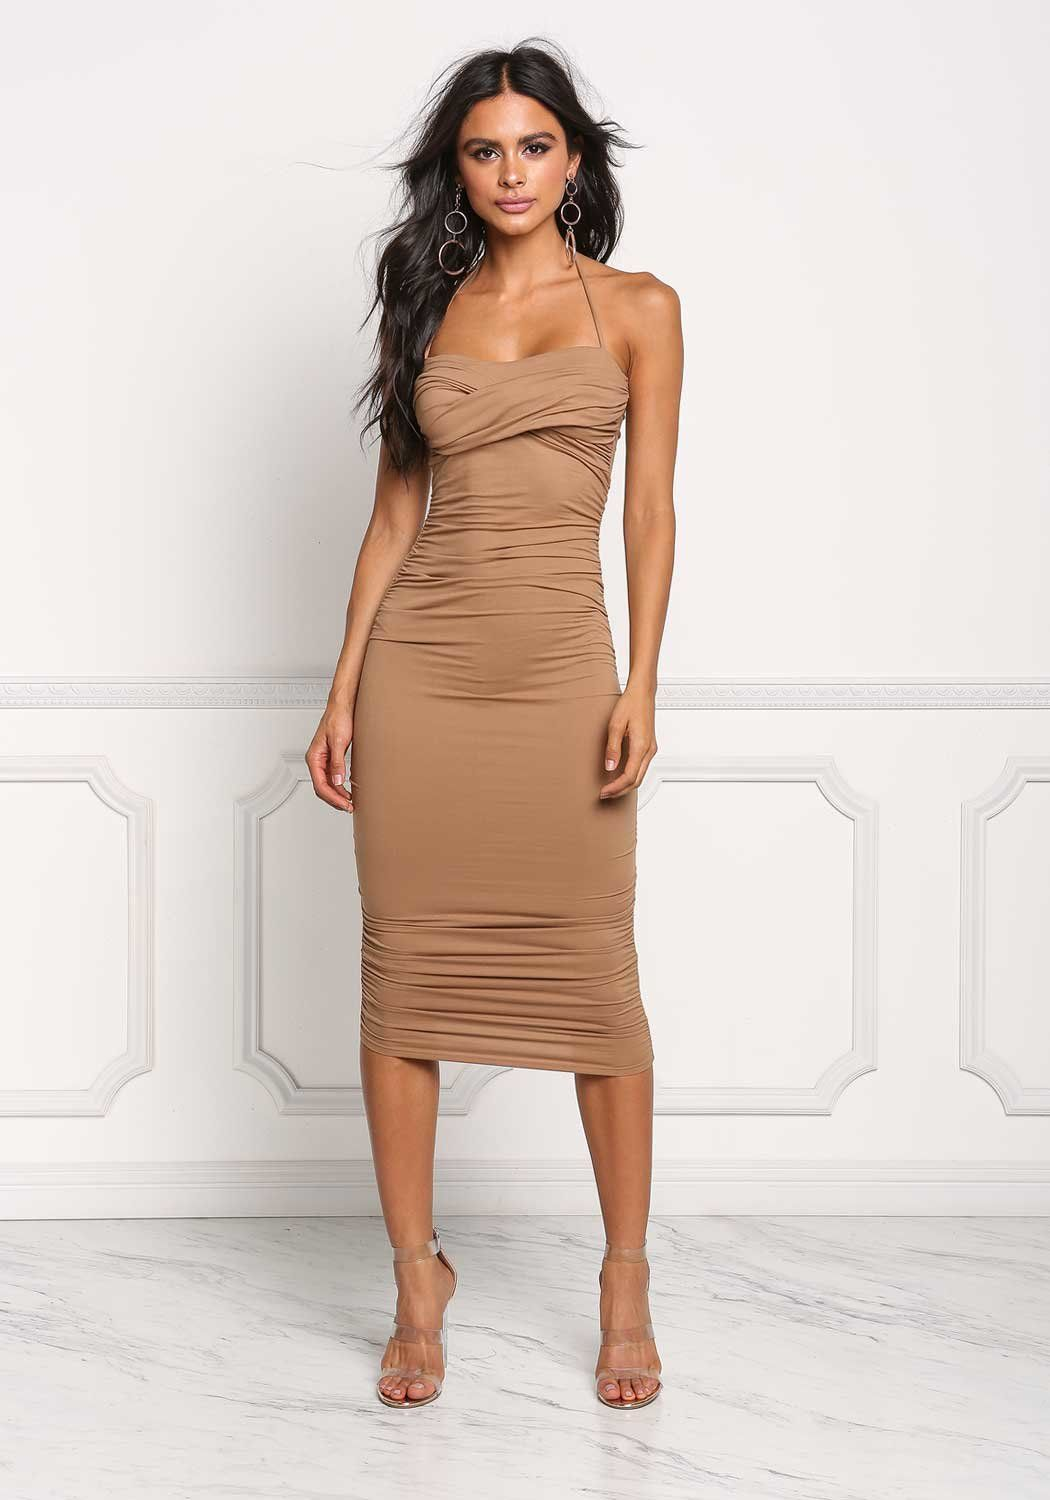 69c1a0712e3d Junior Clothing | Mocha Ruched Halter Bodycon Dress | Loveculture.com